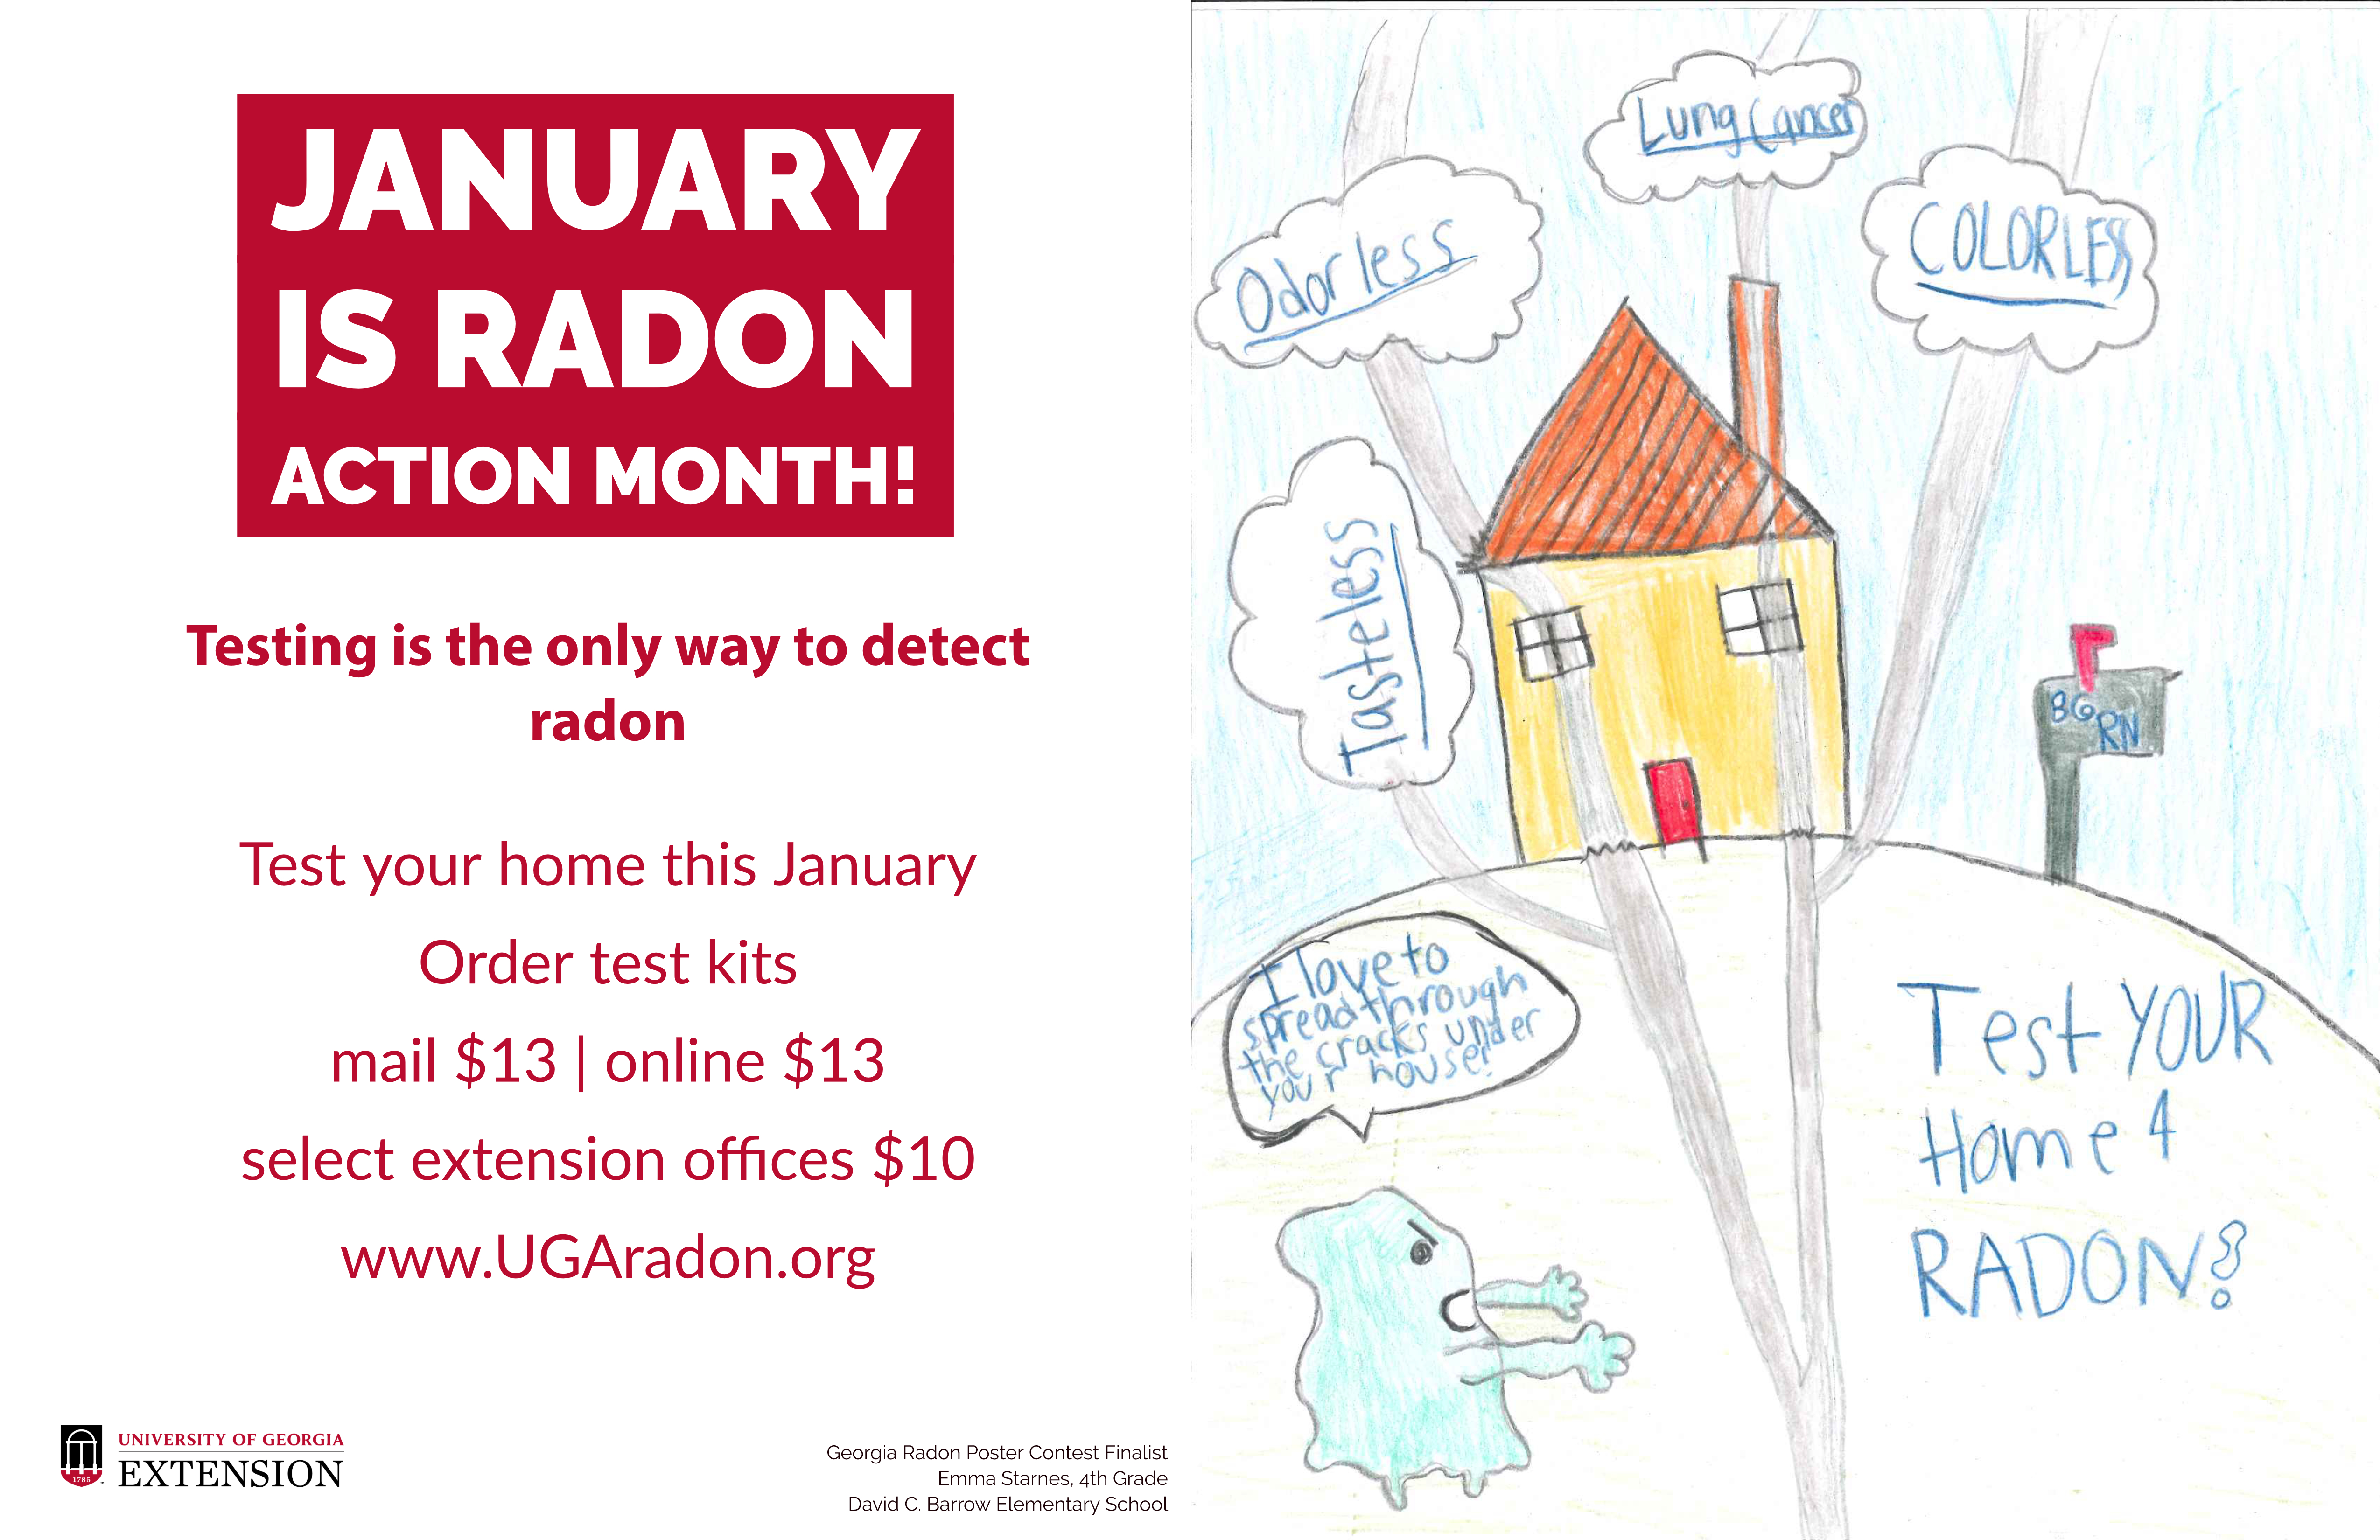 Emma Starnes, a fourth-grade student at David C. Barrow Elementary School in Athens, Georgia, was named a finalist in the 2019 UGA Extension Radon Education Program Poster Contest.